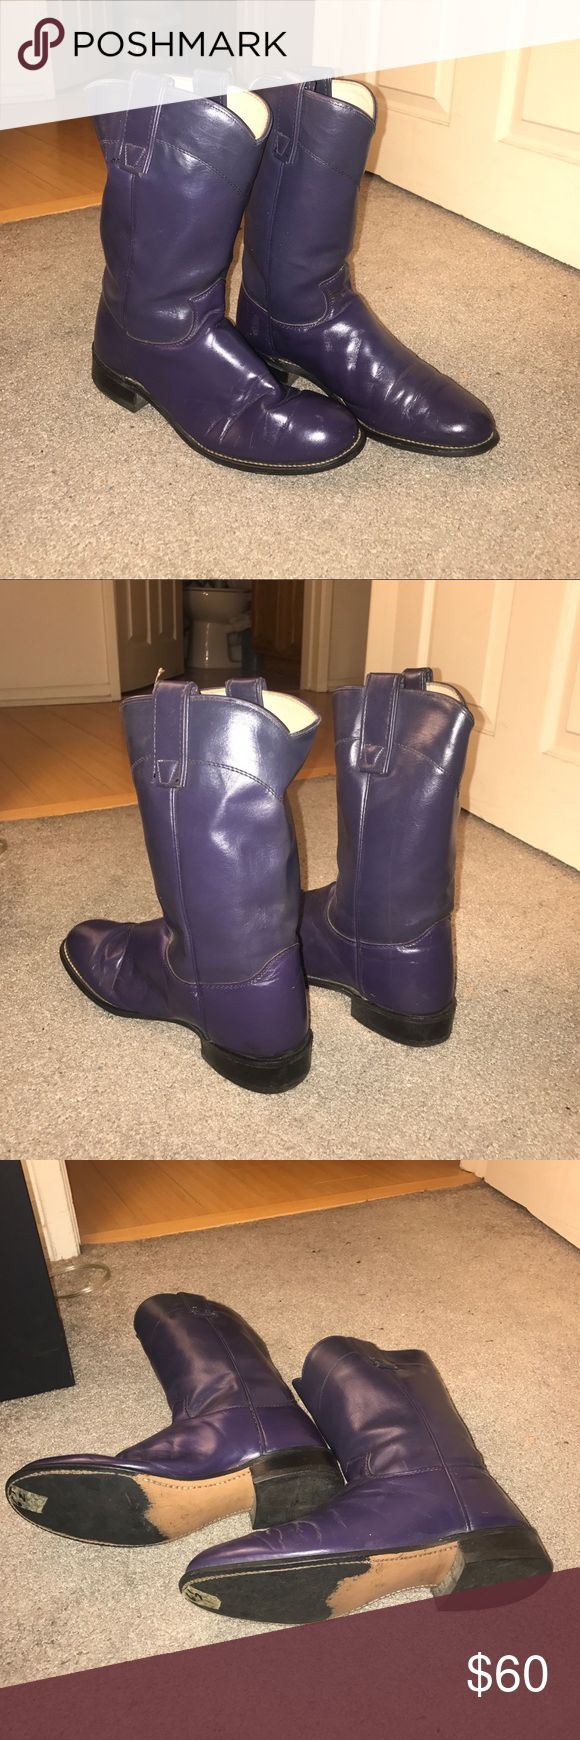 Purple leather cowboy boots Genuine leather. Minor signs of wear. Super cute for summer and winter occasions! Texas Leather Manufacturing Shoes Combat & Moto Boots